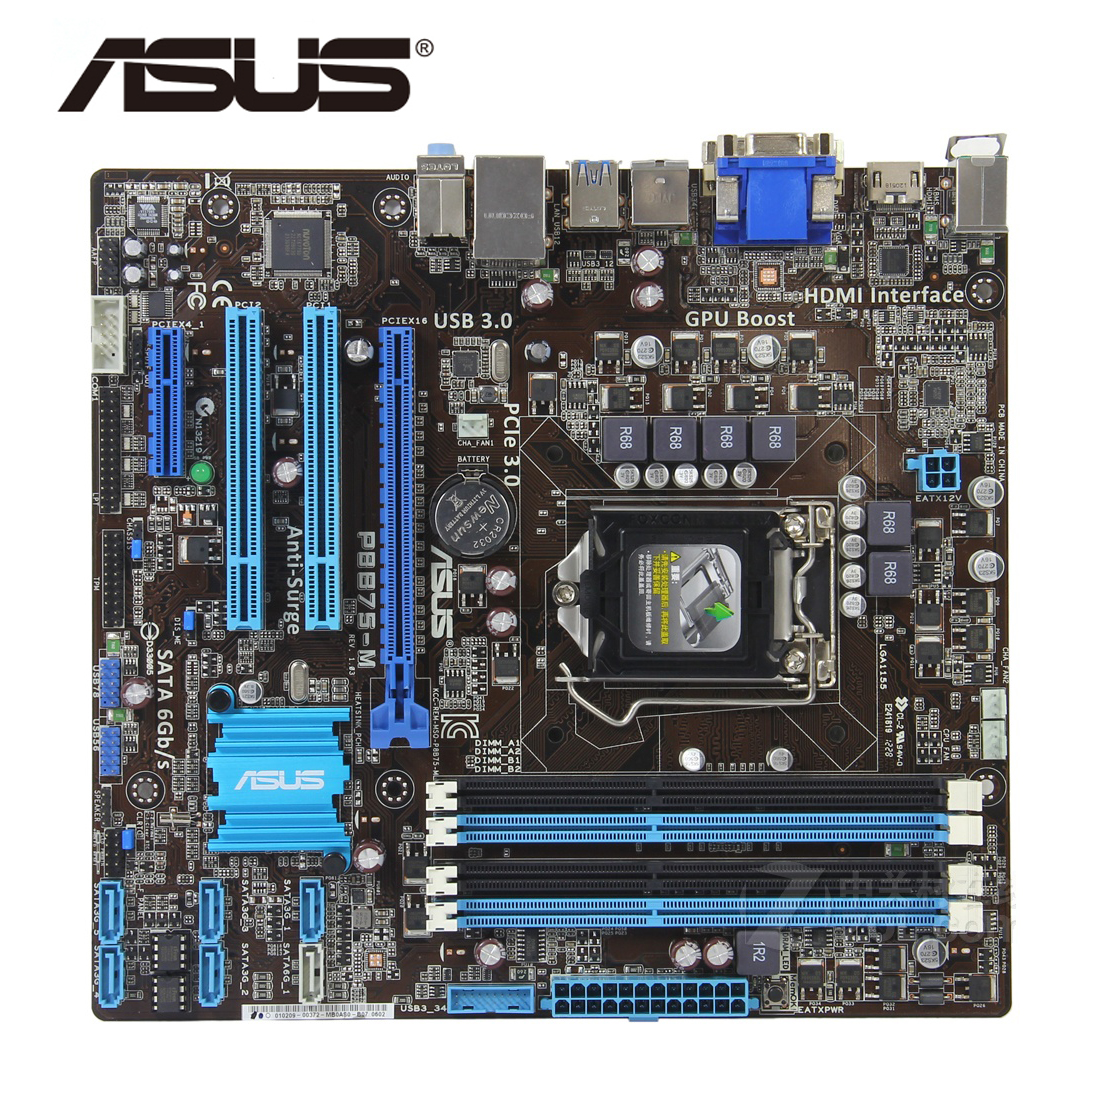 LGA 1155 B75 100% Original ASUS P8B75-M P8B75M/CSM Motherboard Socket SATA III 4 x DDR3 32GB USB3.0 P8B75-M/CSM Mainboard Used(China)